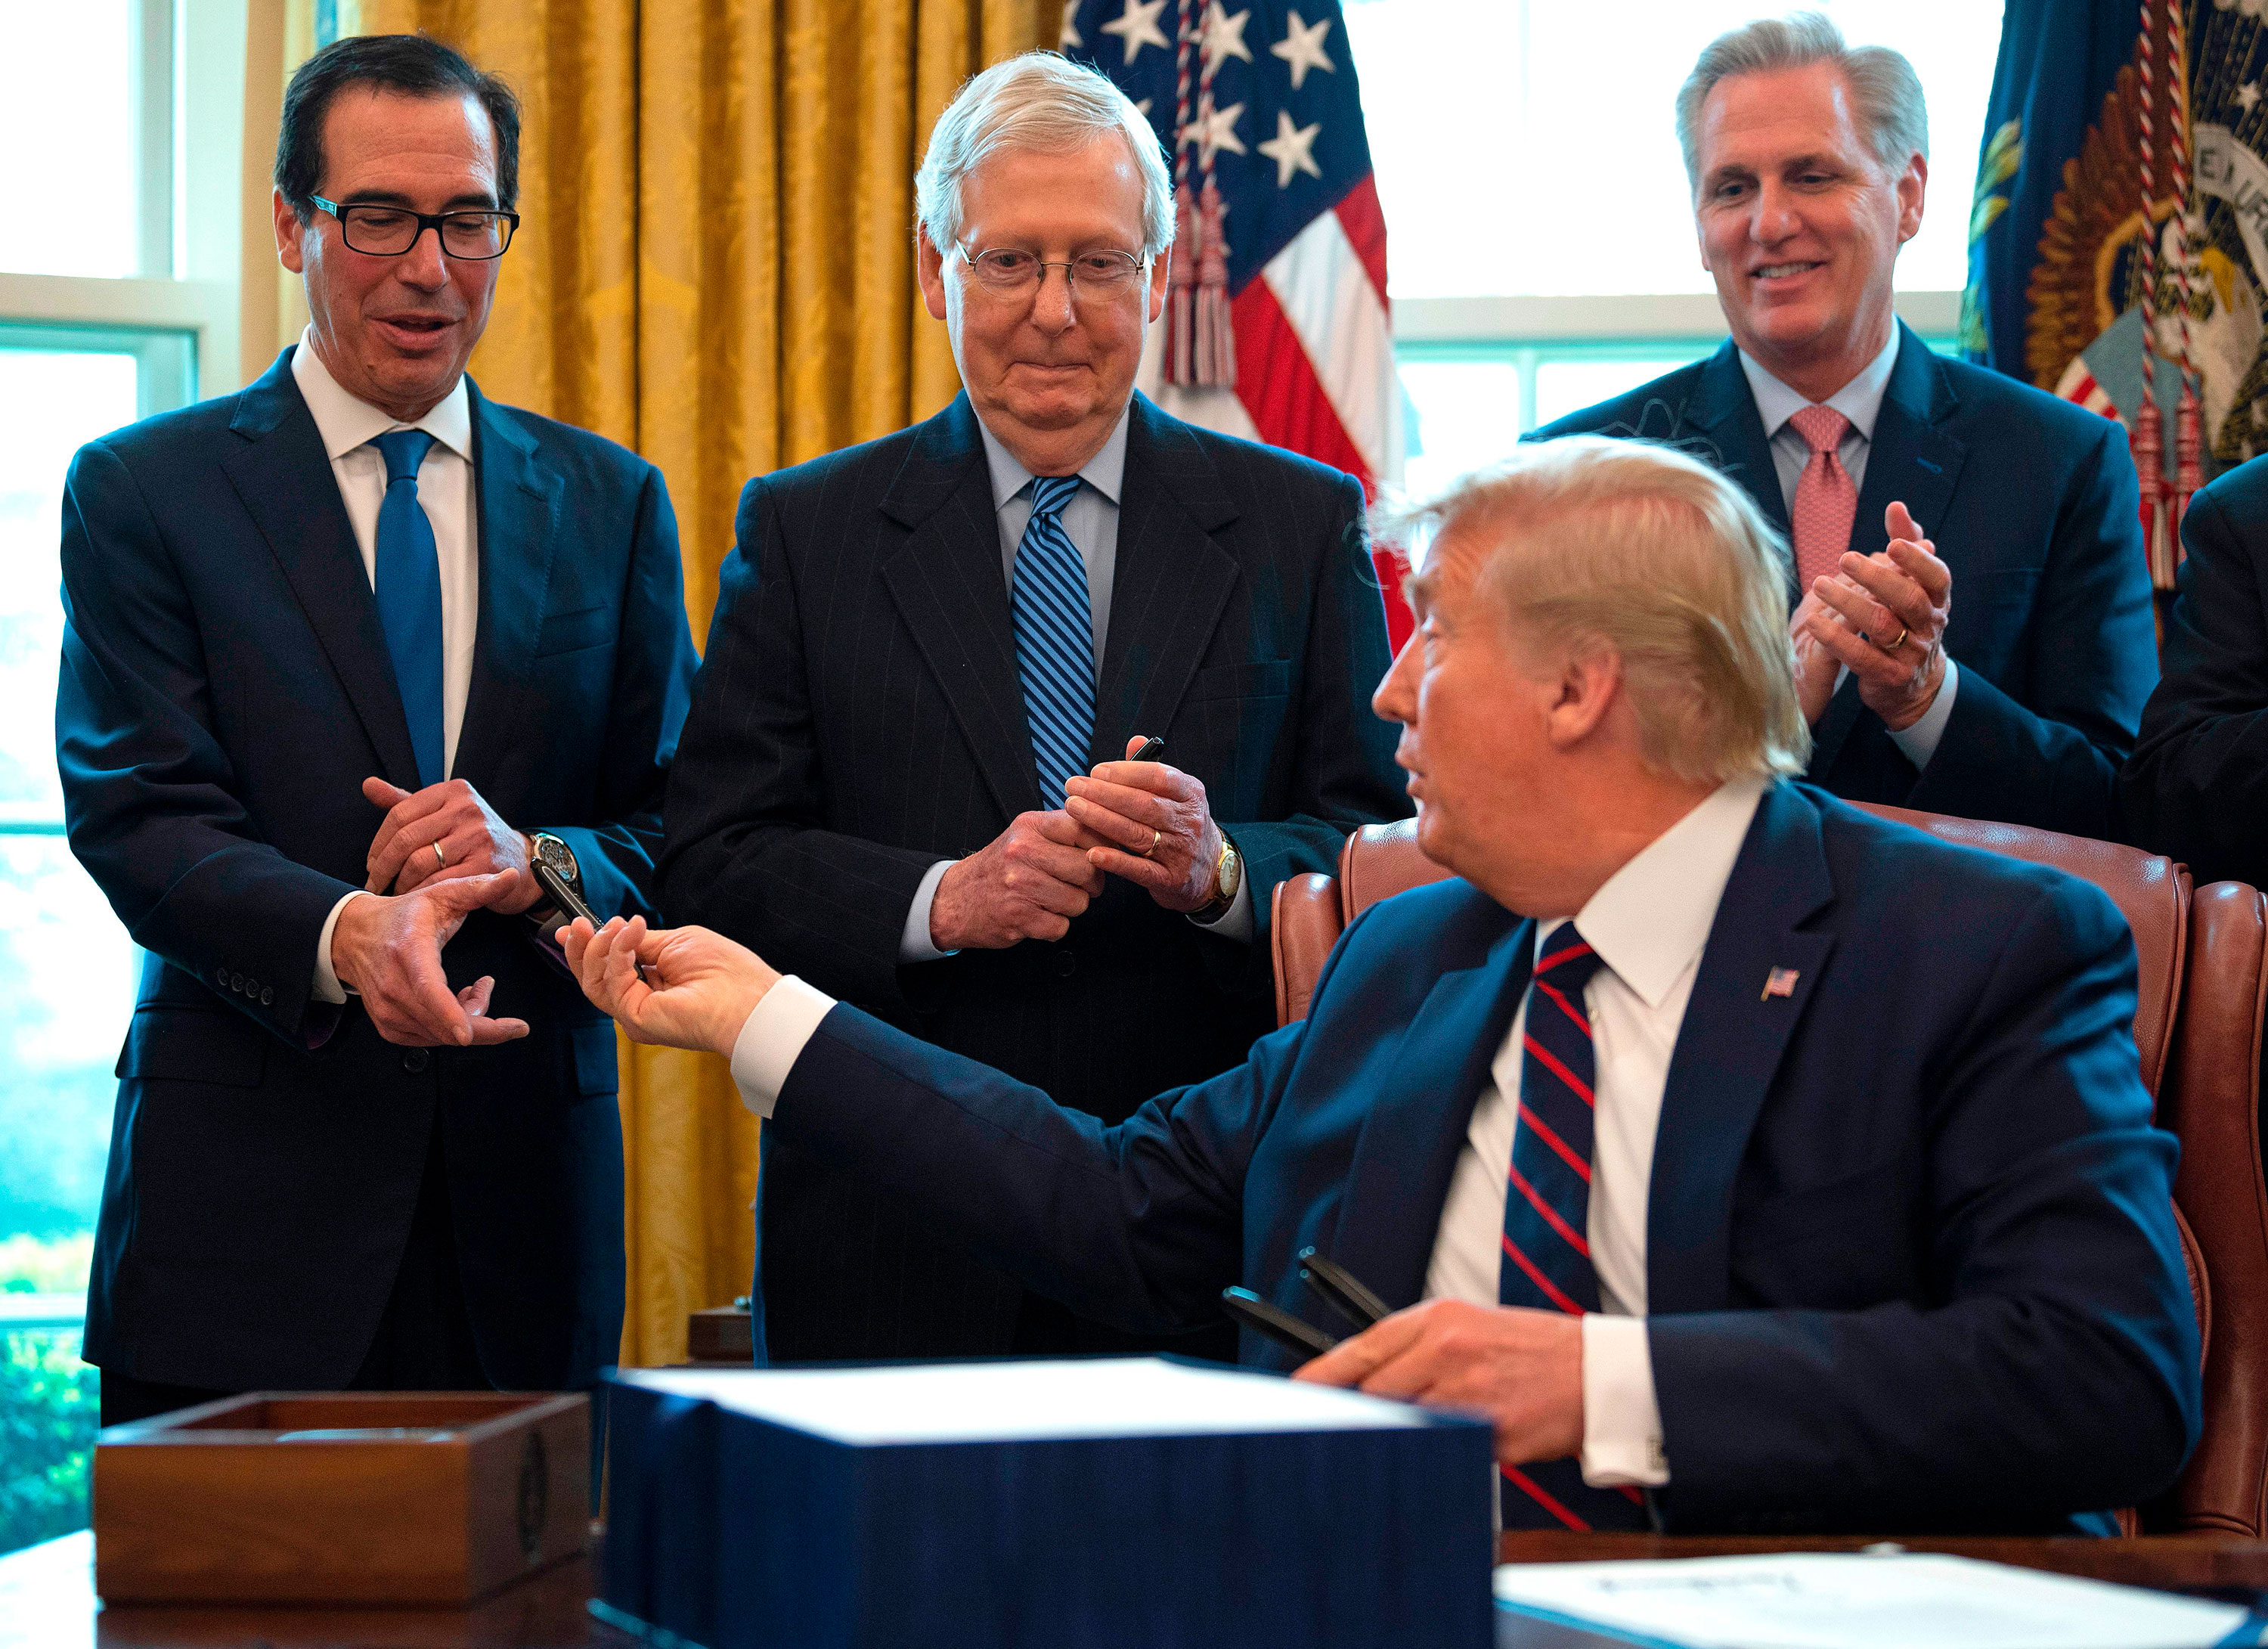 President Donald Trump hands out pens to Treasury Secretary Steven Mnuchin, left, and Sen. Mitch McConnell, center, after signing the CARES act, a $2 trillion rescue package to provide economic relief amid the coronavirus outbreak, on March 27.